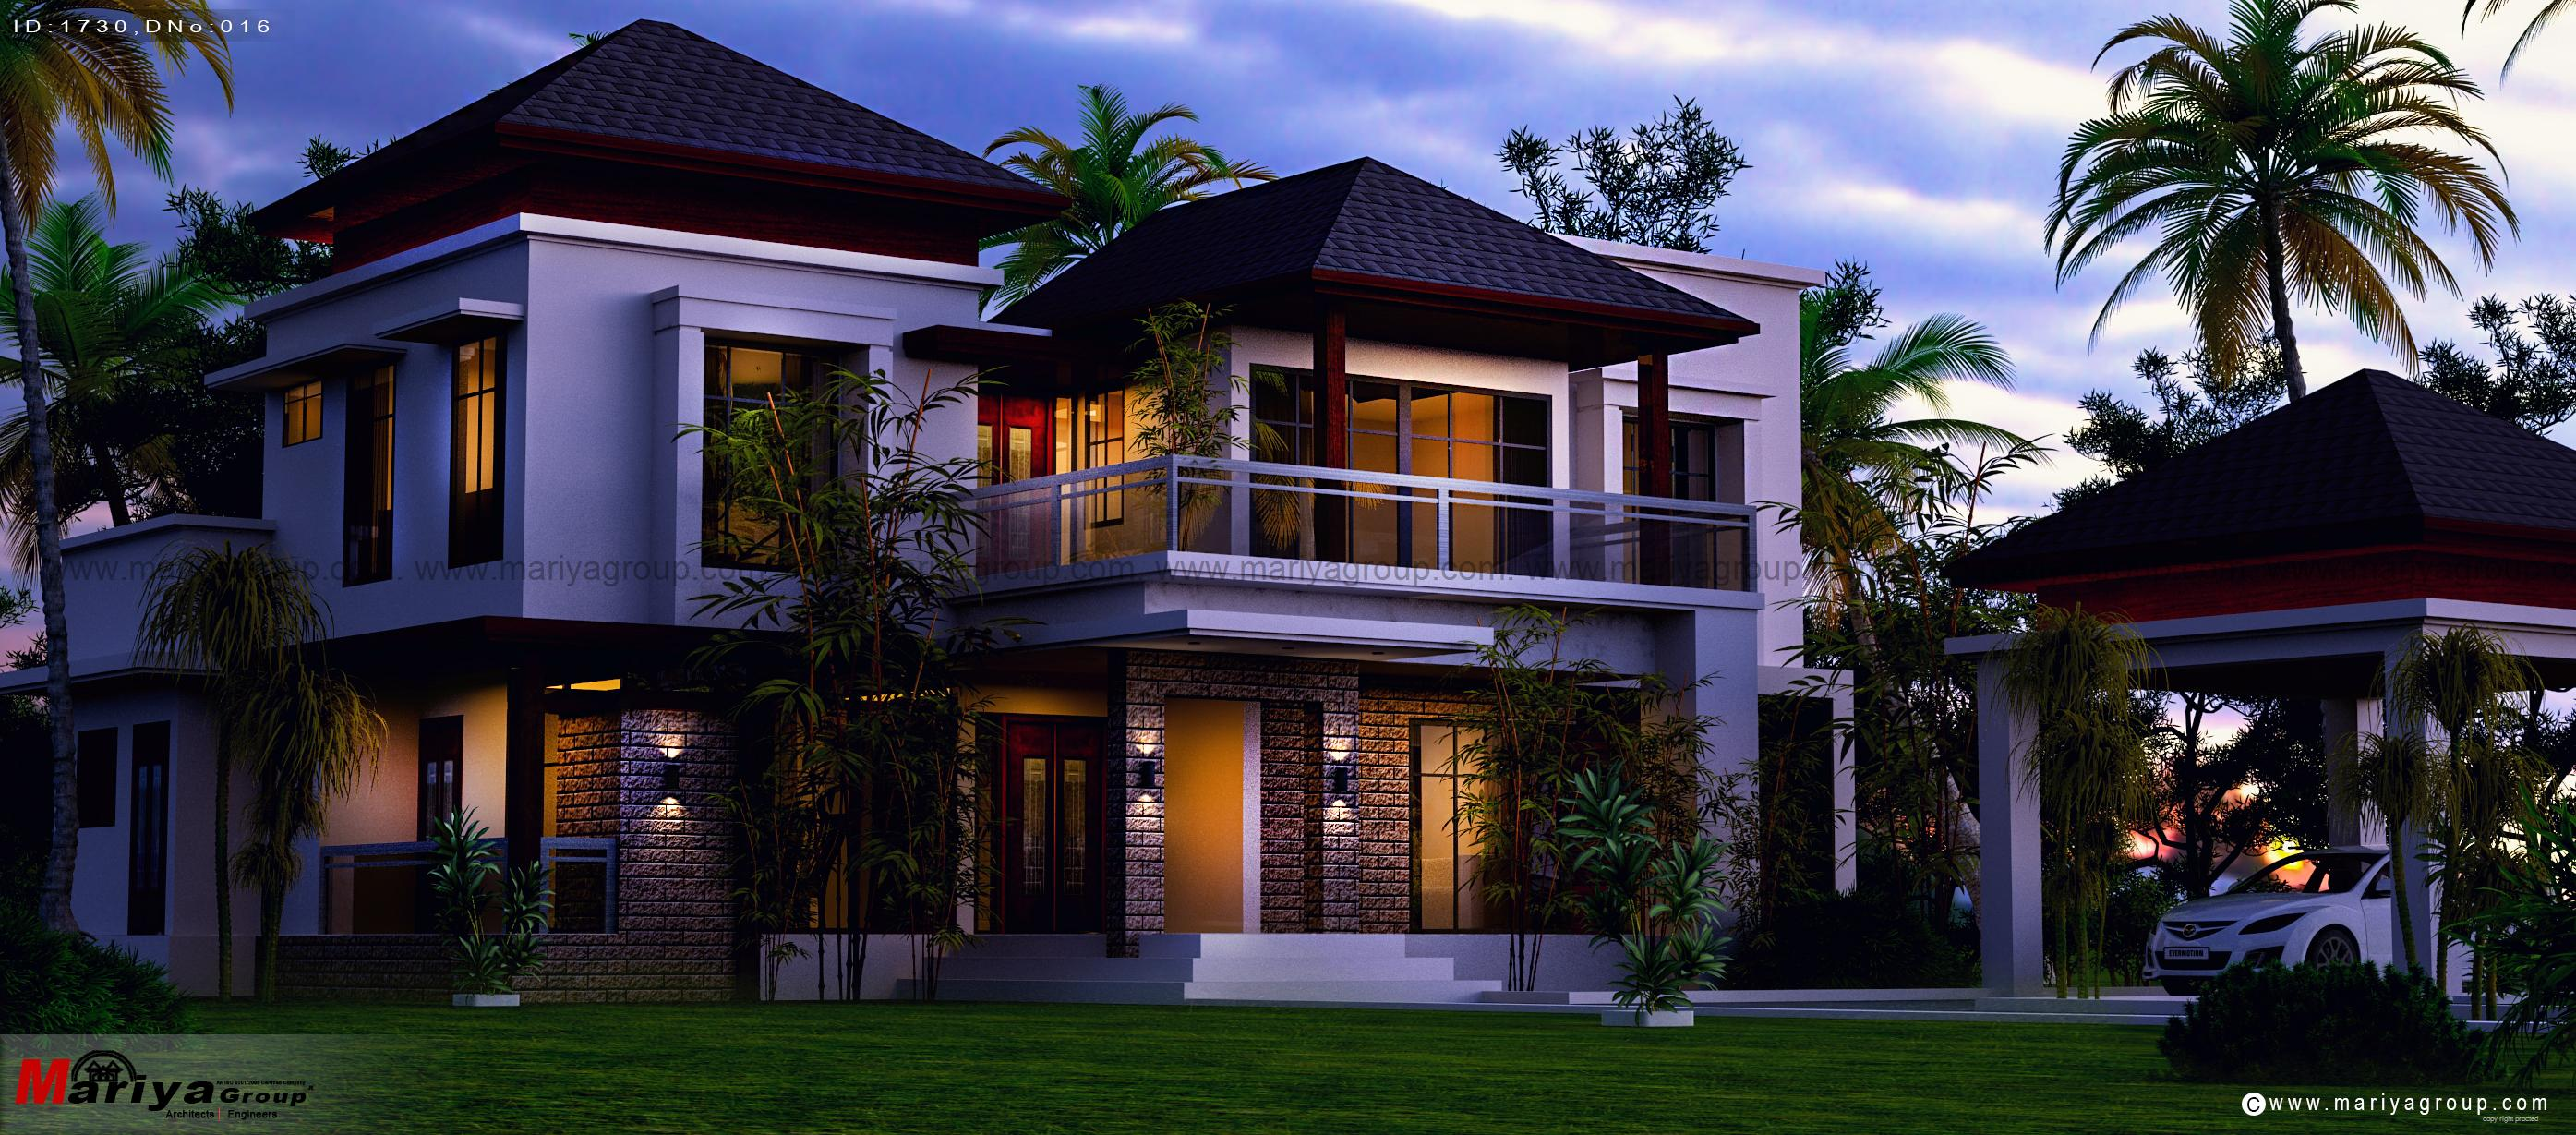 Architects in bangalore best architects in bangalore for Home designs bangalore